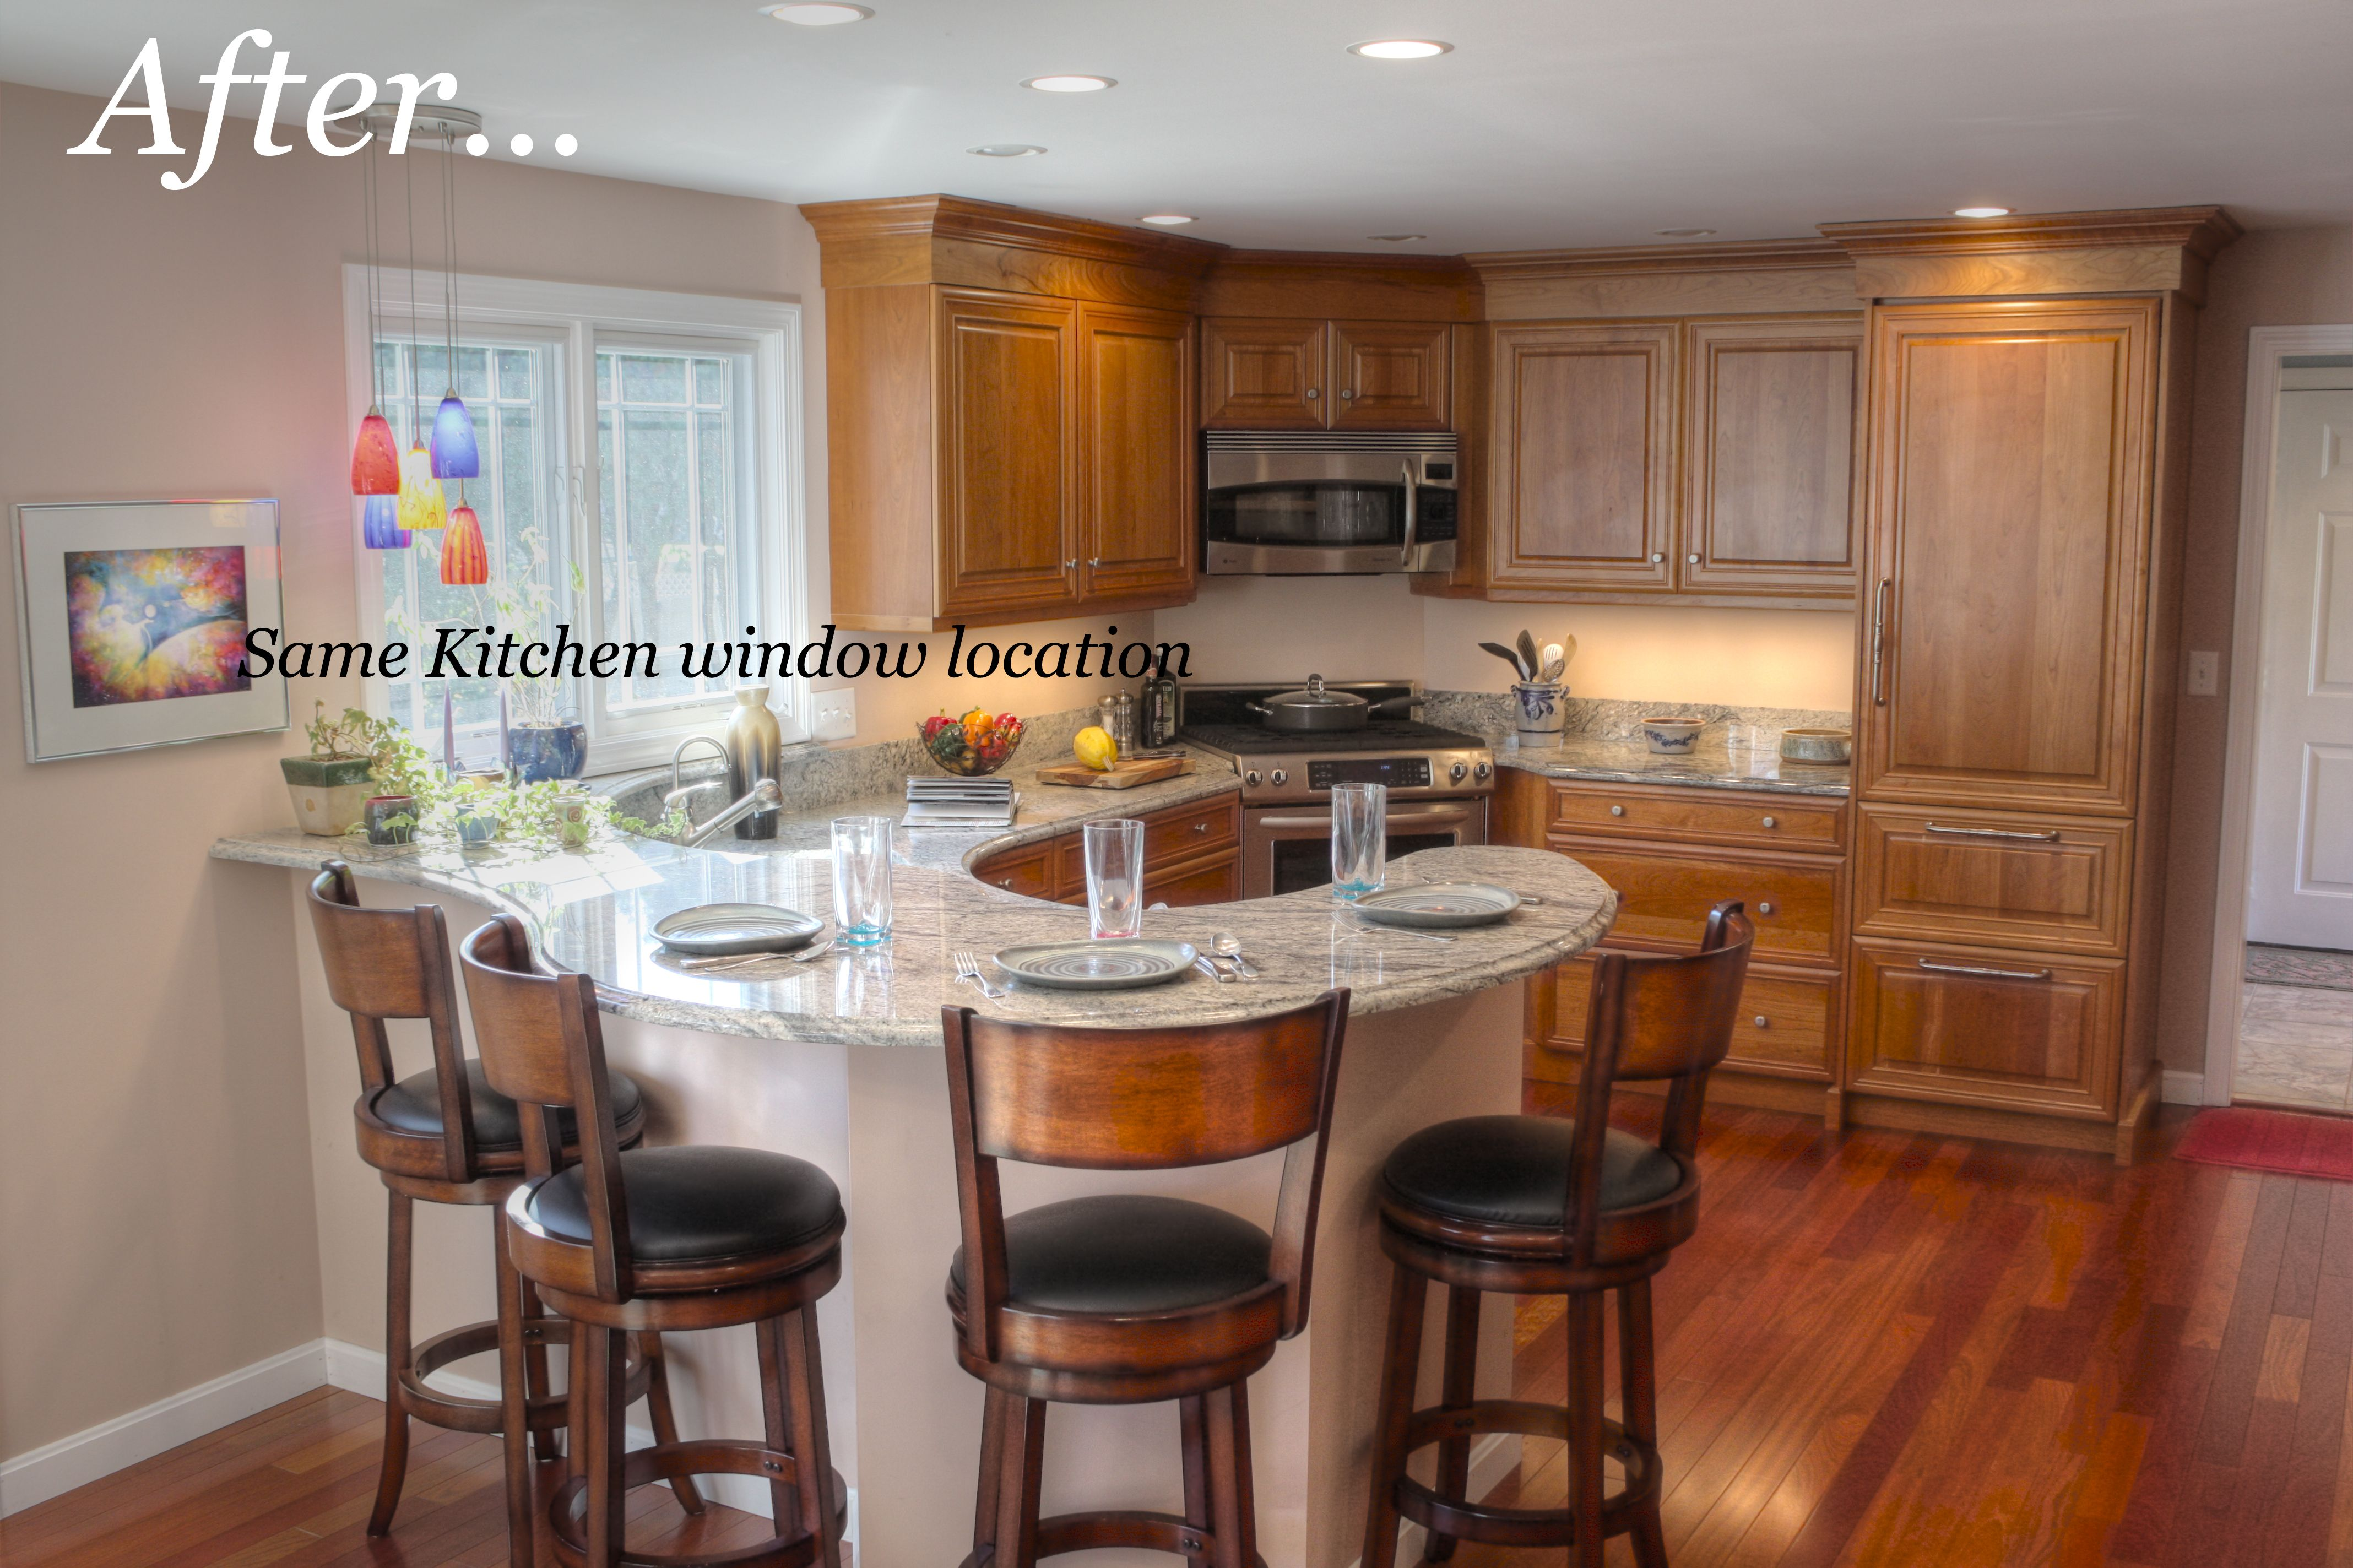 Nashua Nh Kitchen Remodel From 1960 S Knotty Pine To Unique Transitional With A Lo Kitchen Remodel Small Kitchen Remodel Countertops Cheap Kitchen Remodel